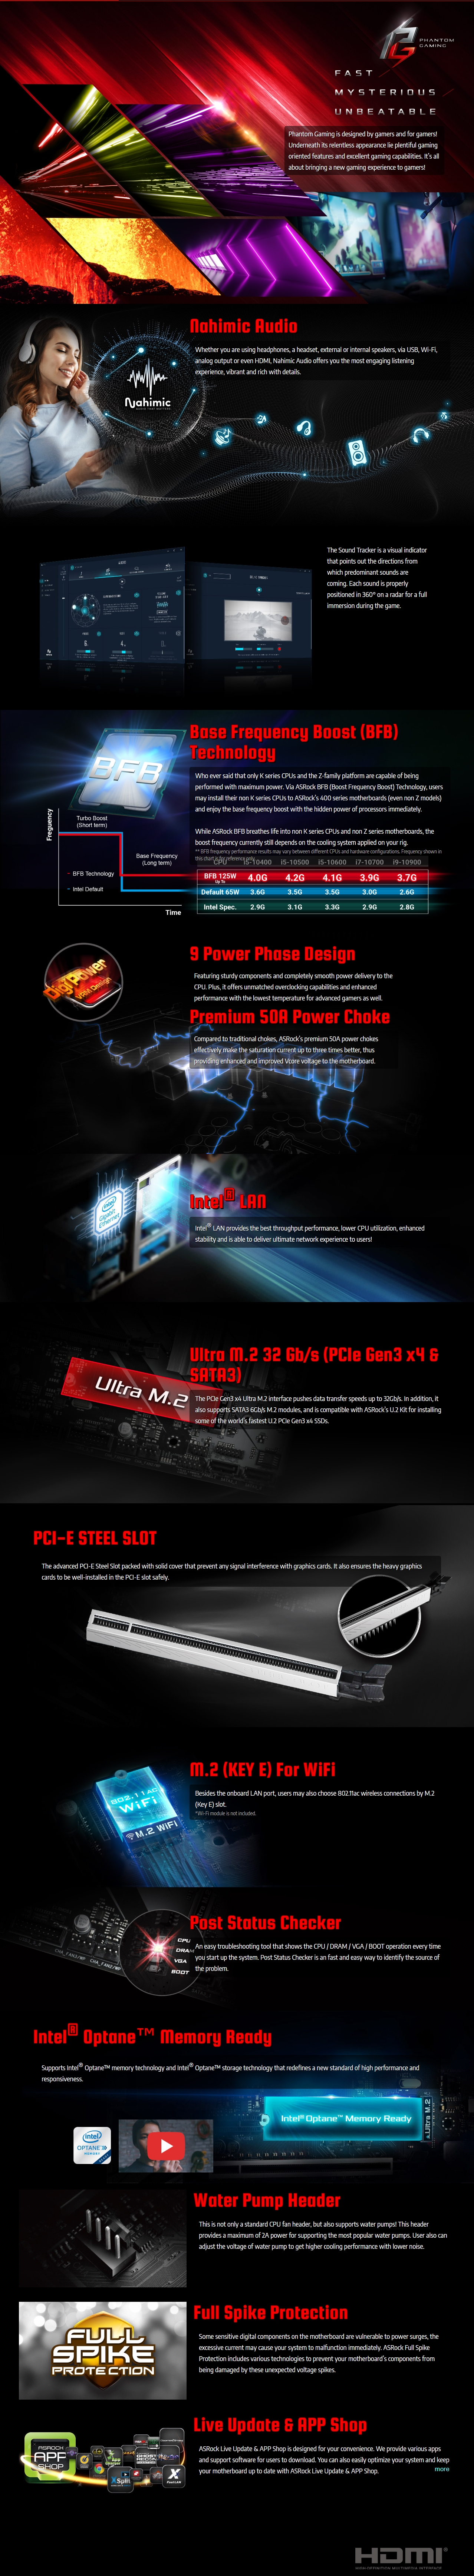 A large marketing image providing additional information about the product ASRock B460 Phantom Gaming 4 LGA1200 ATX Desktop Motherboard - Additional alt info not provided